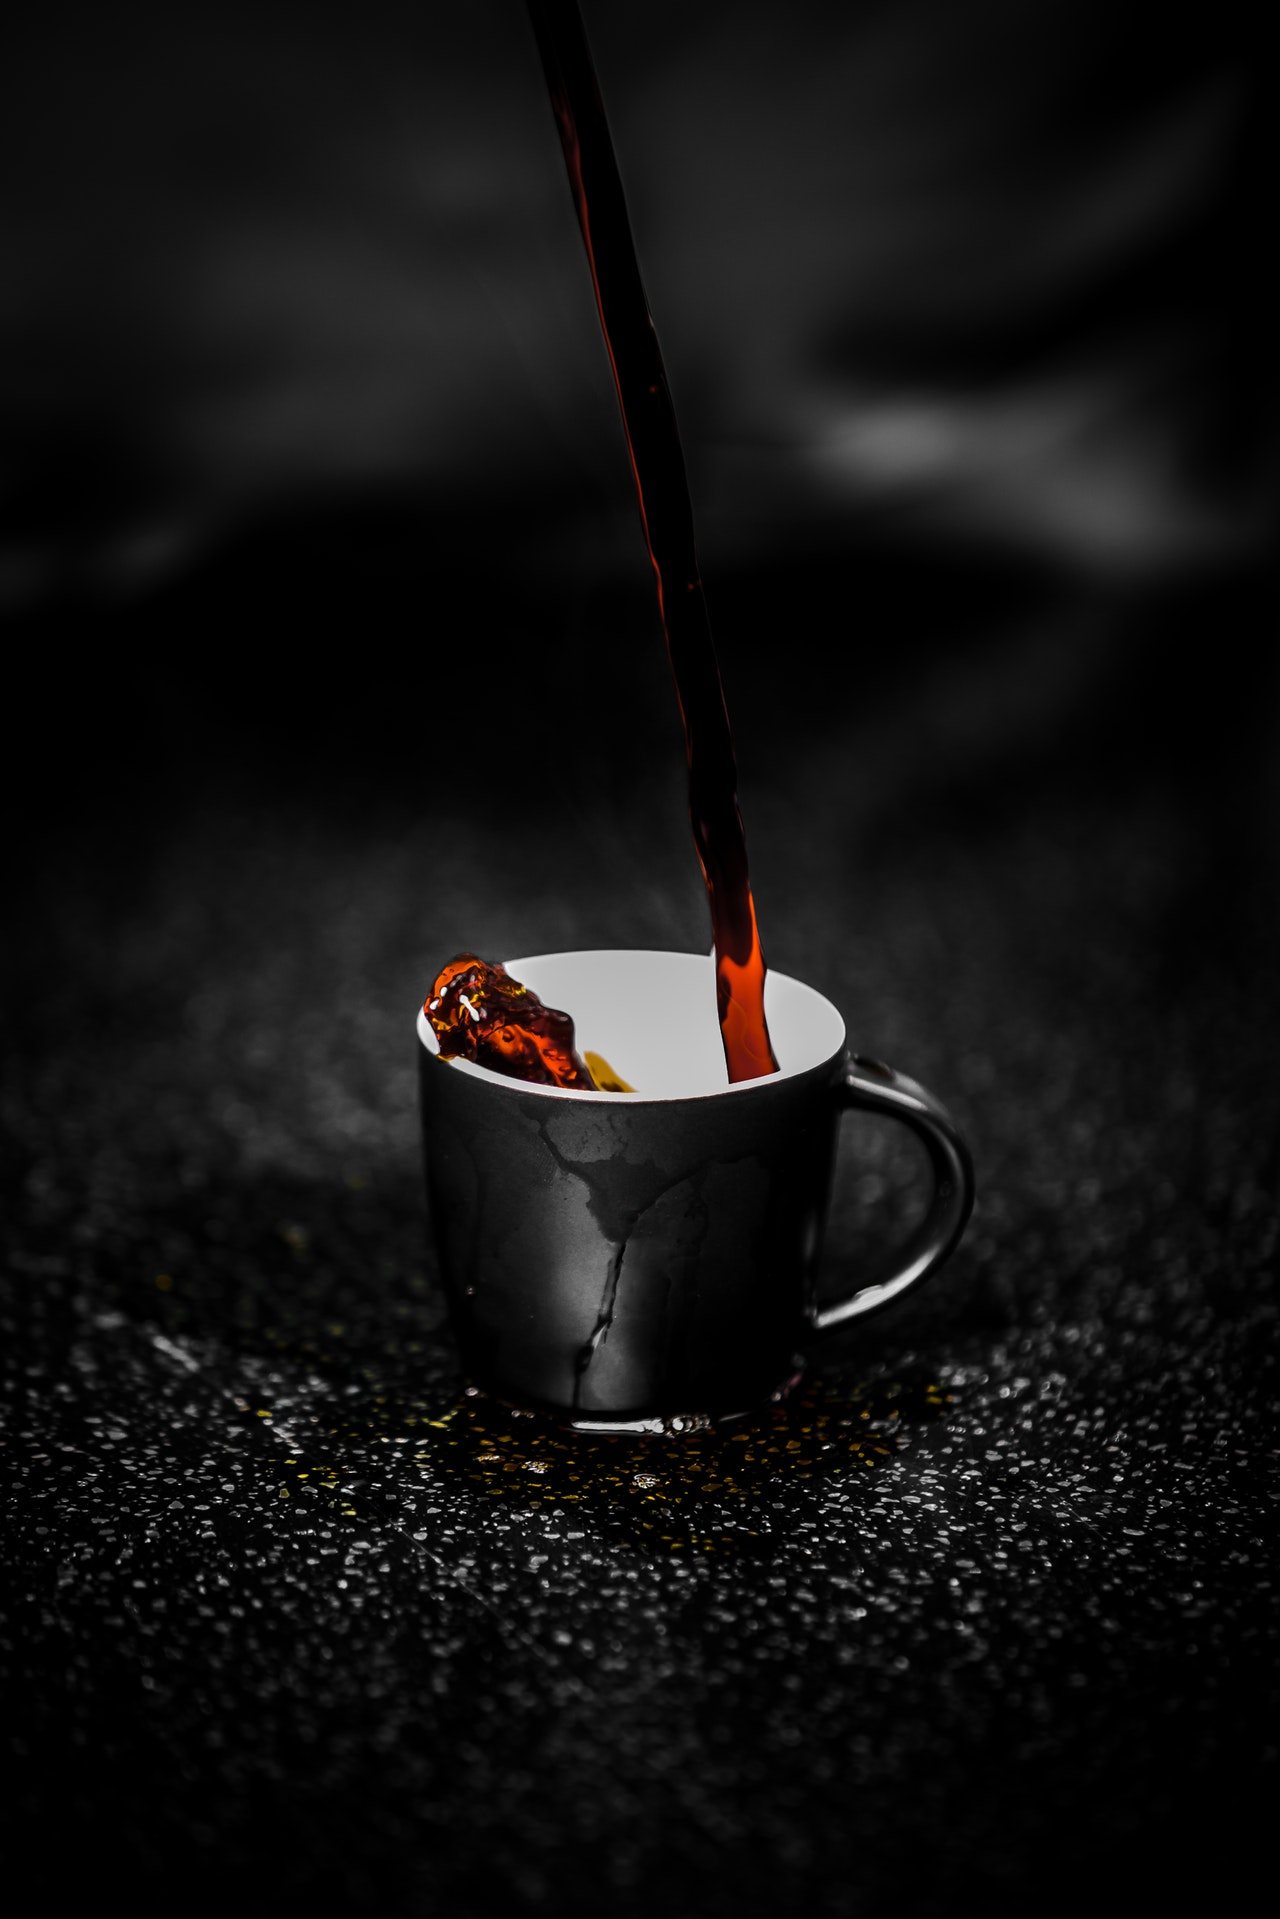 blurred-background-brewed-coffee-caffeine-1235706.jpg